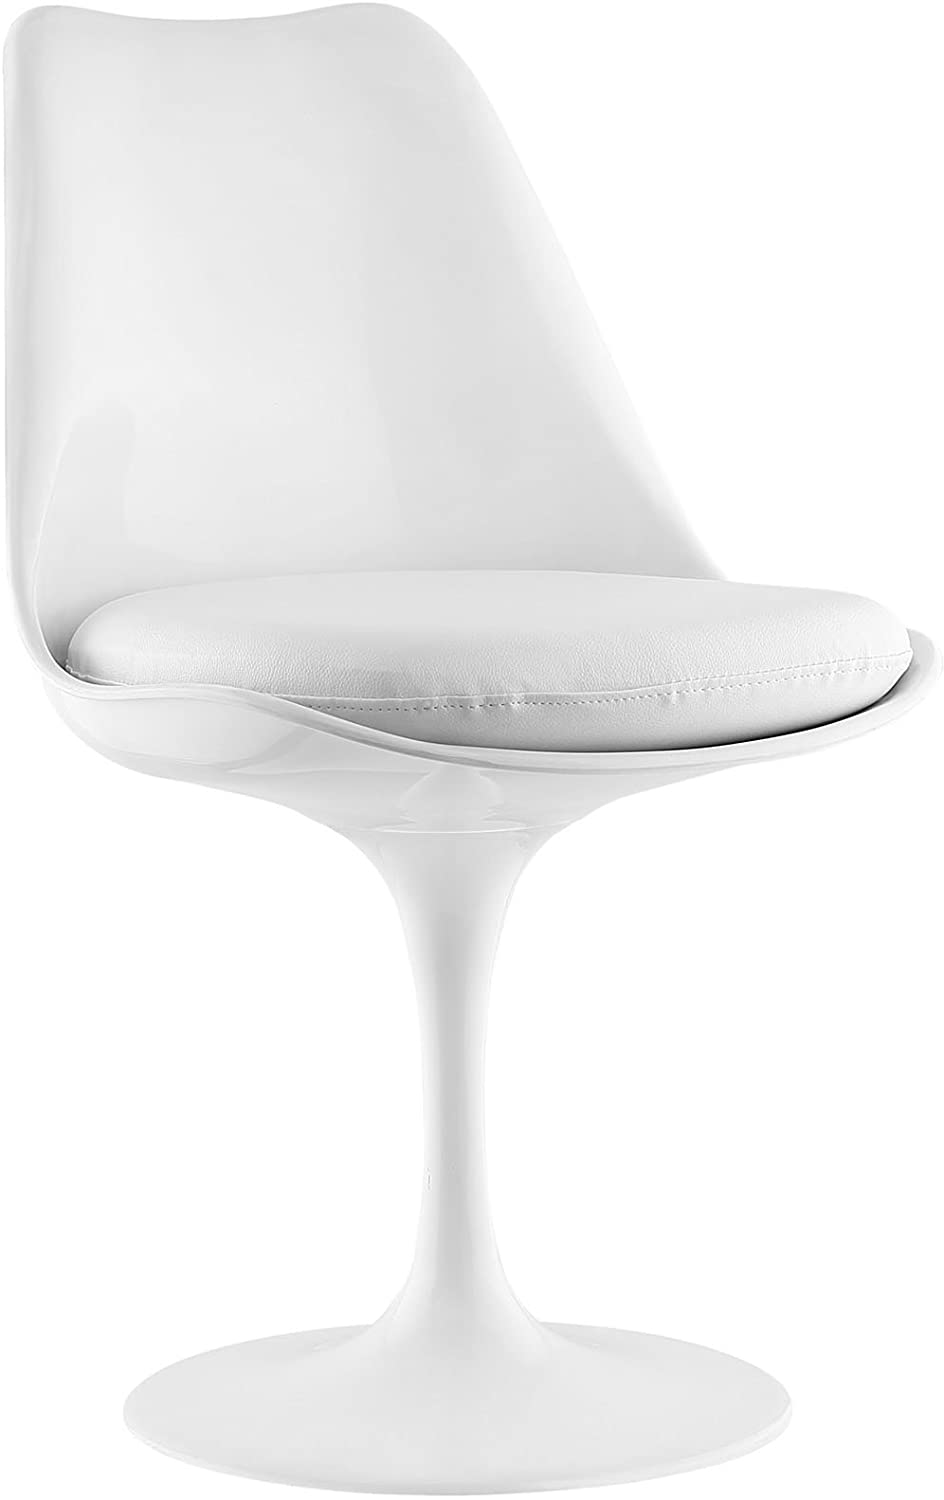 Modway Lippa Mid-Century Modern Faux Leather Upholstered Swivel Kitchen and Dining Room Chair in White